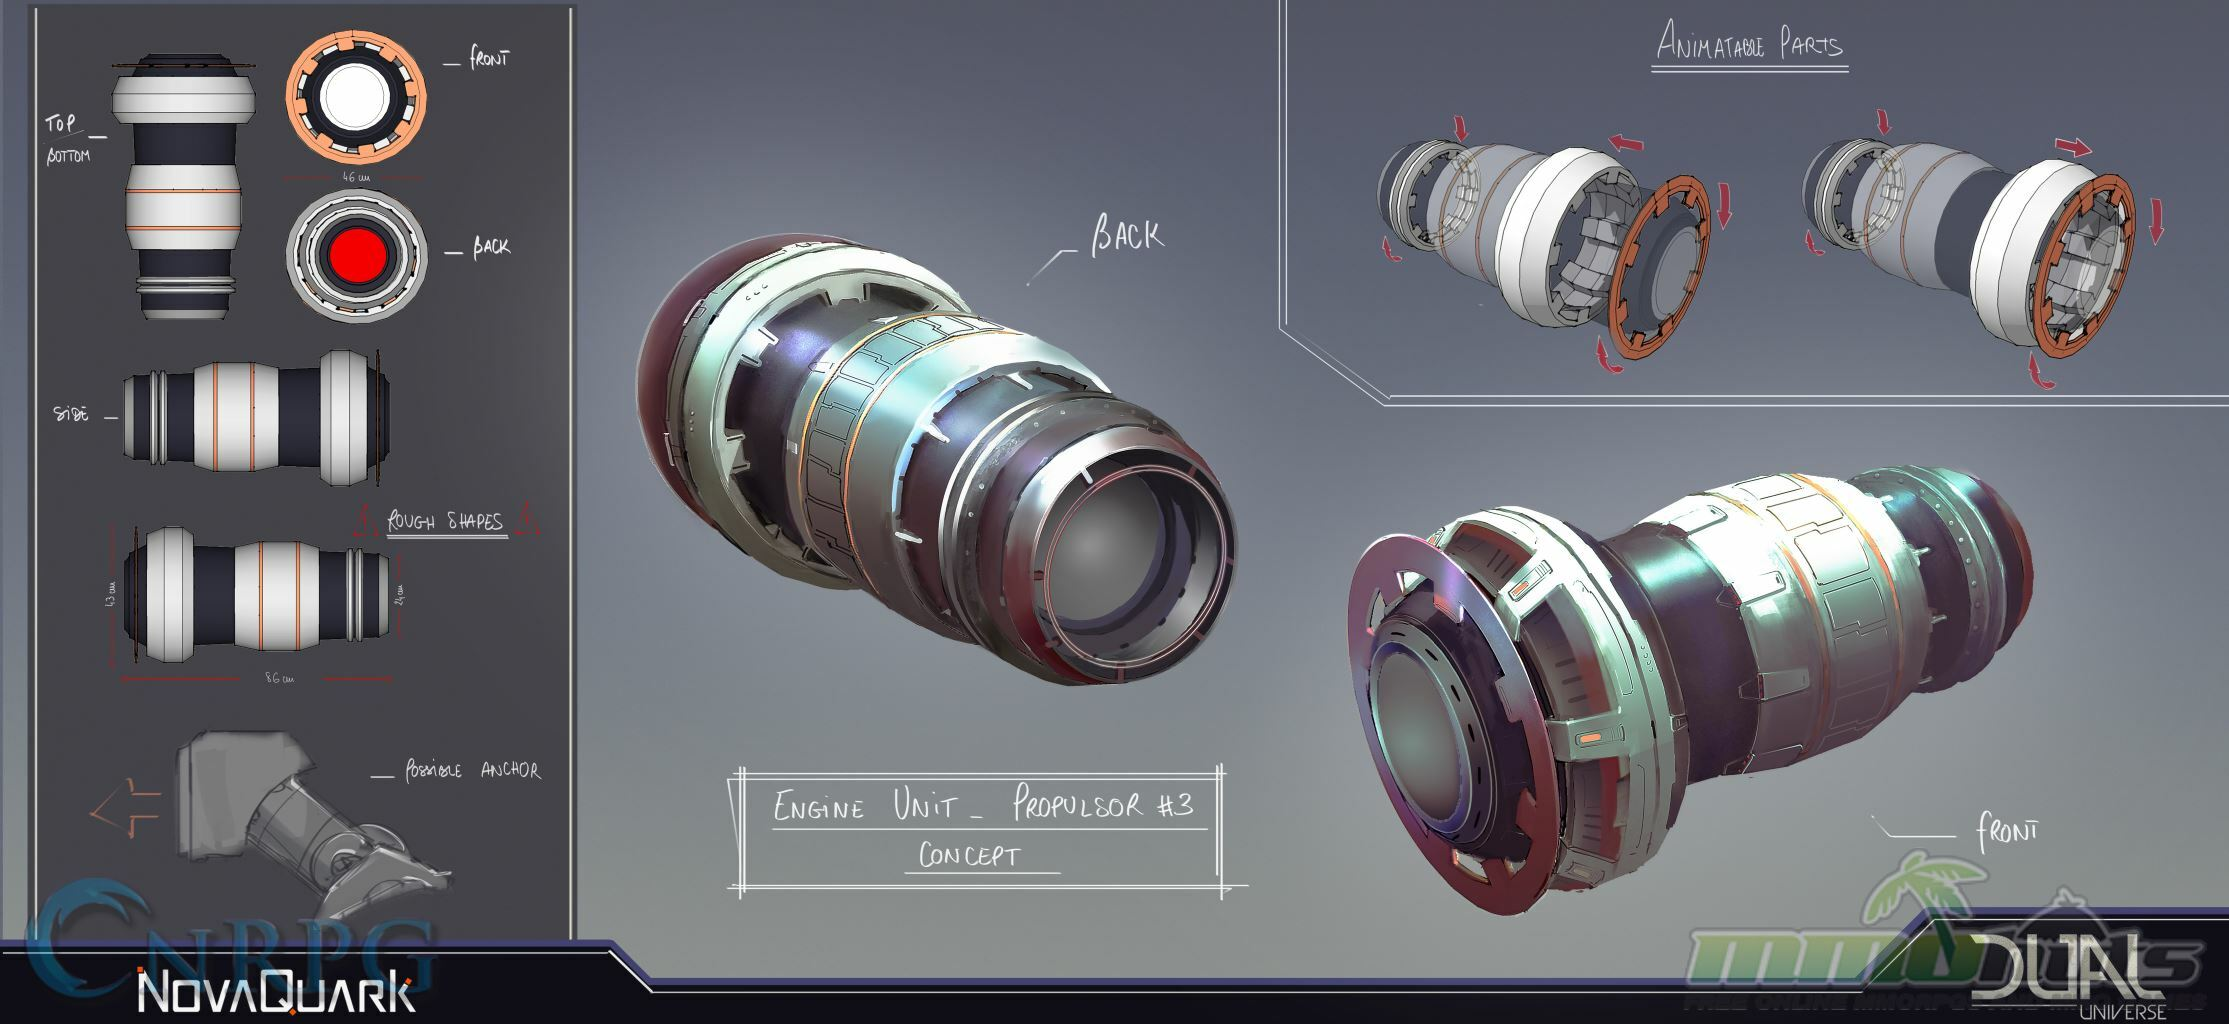 19_engine_unit_propulsor_v3